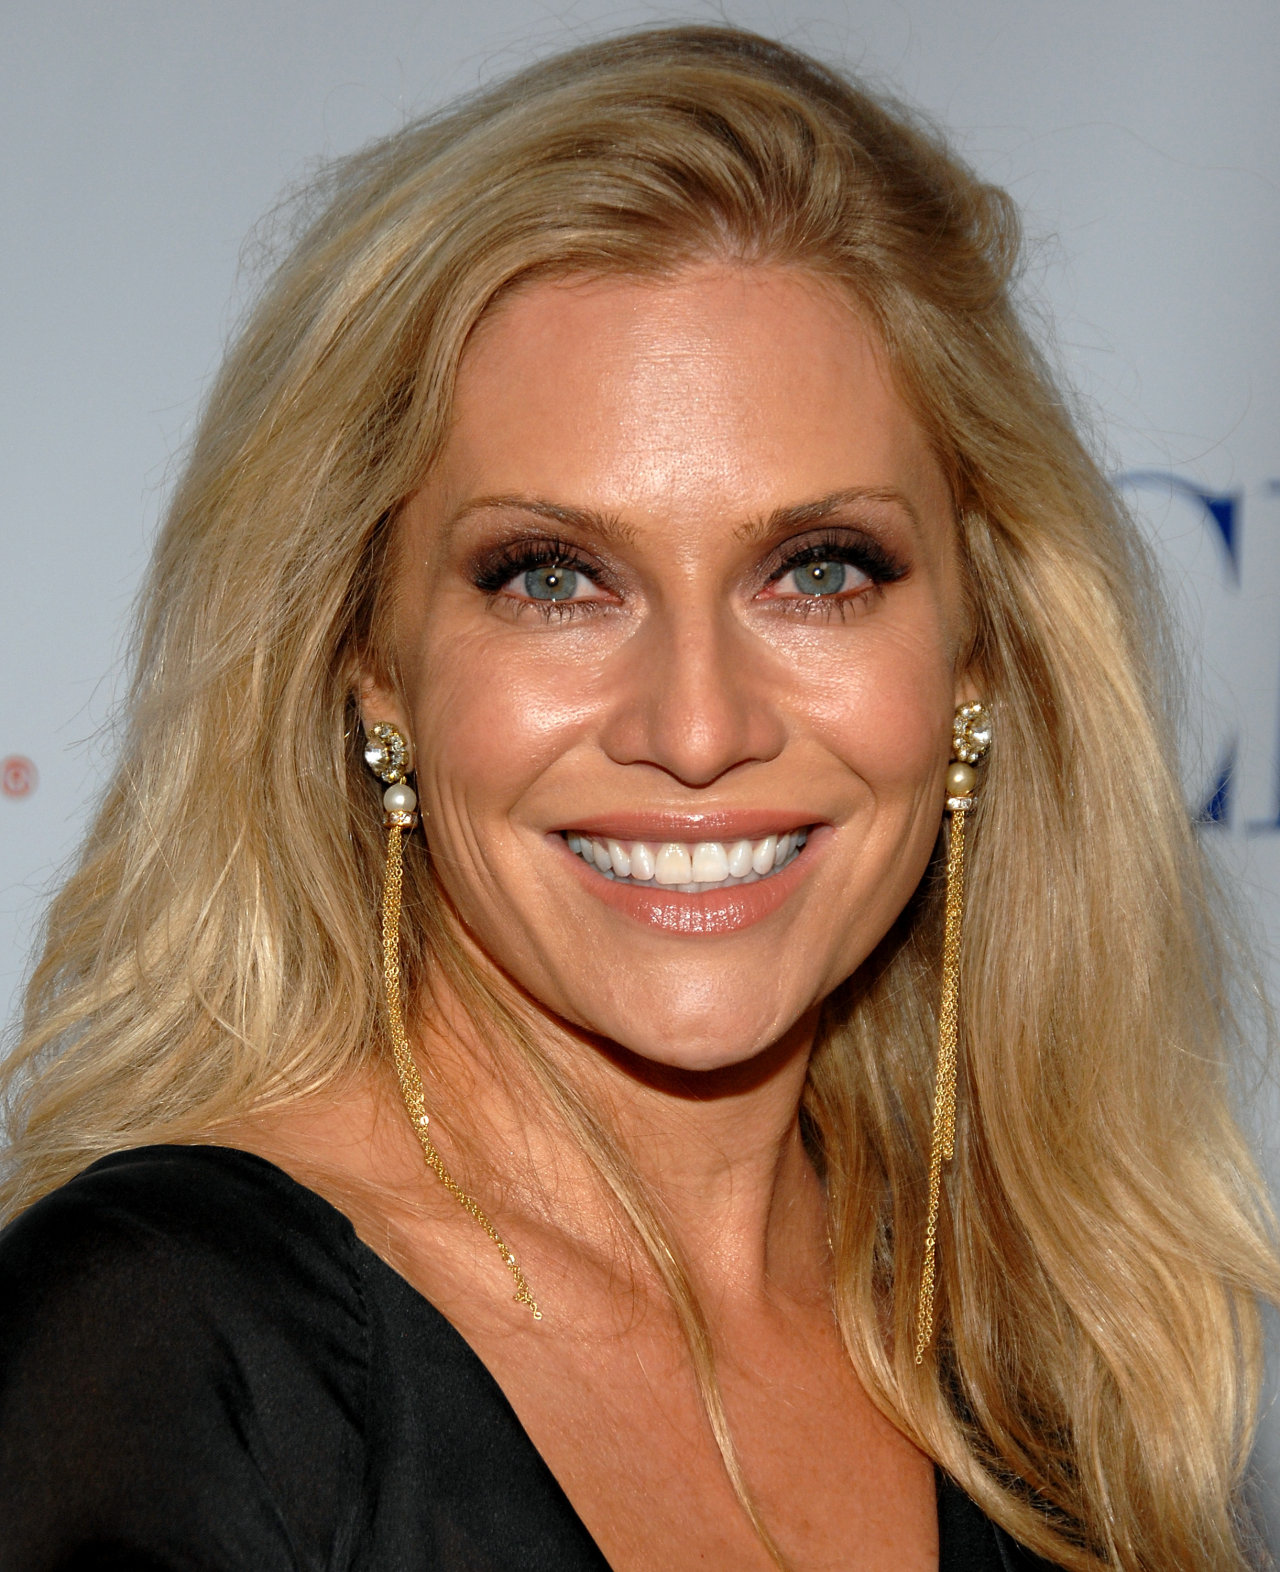 Eva Wyrwal Wallpaper: Celebrity Emily Procter Photos. Pictures, Wallpapers